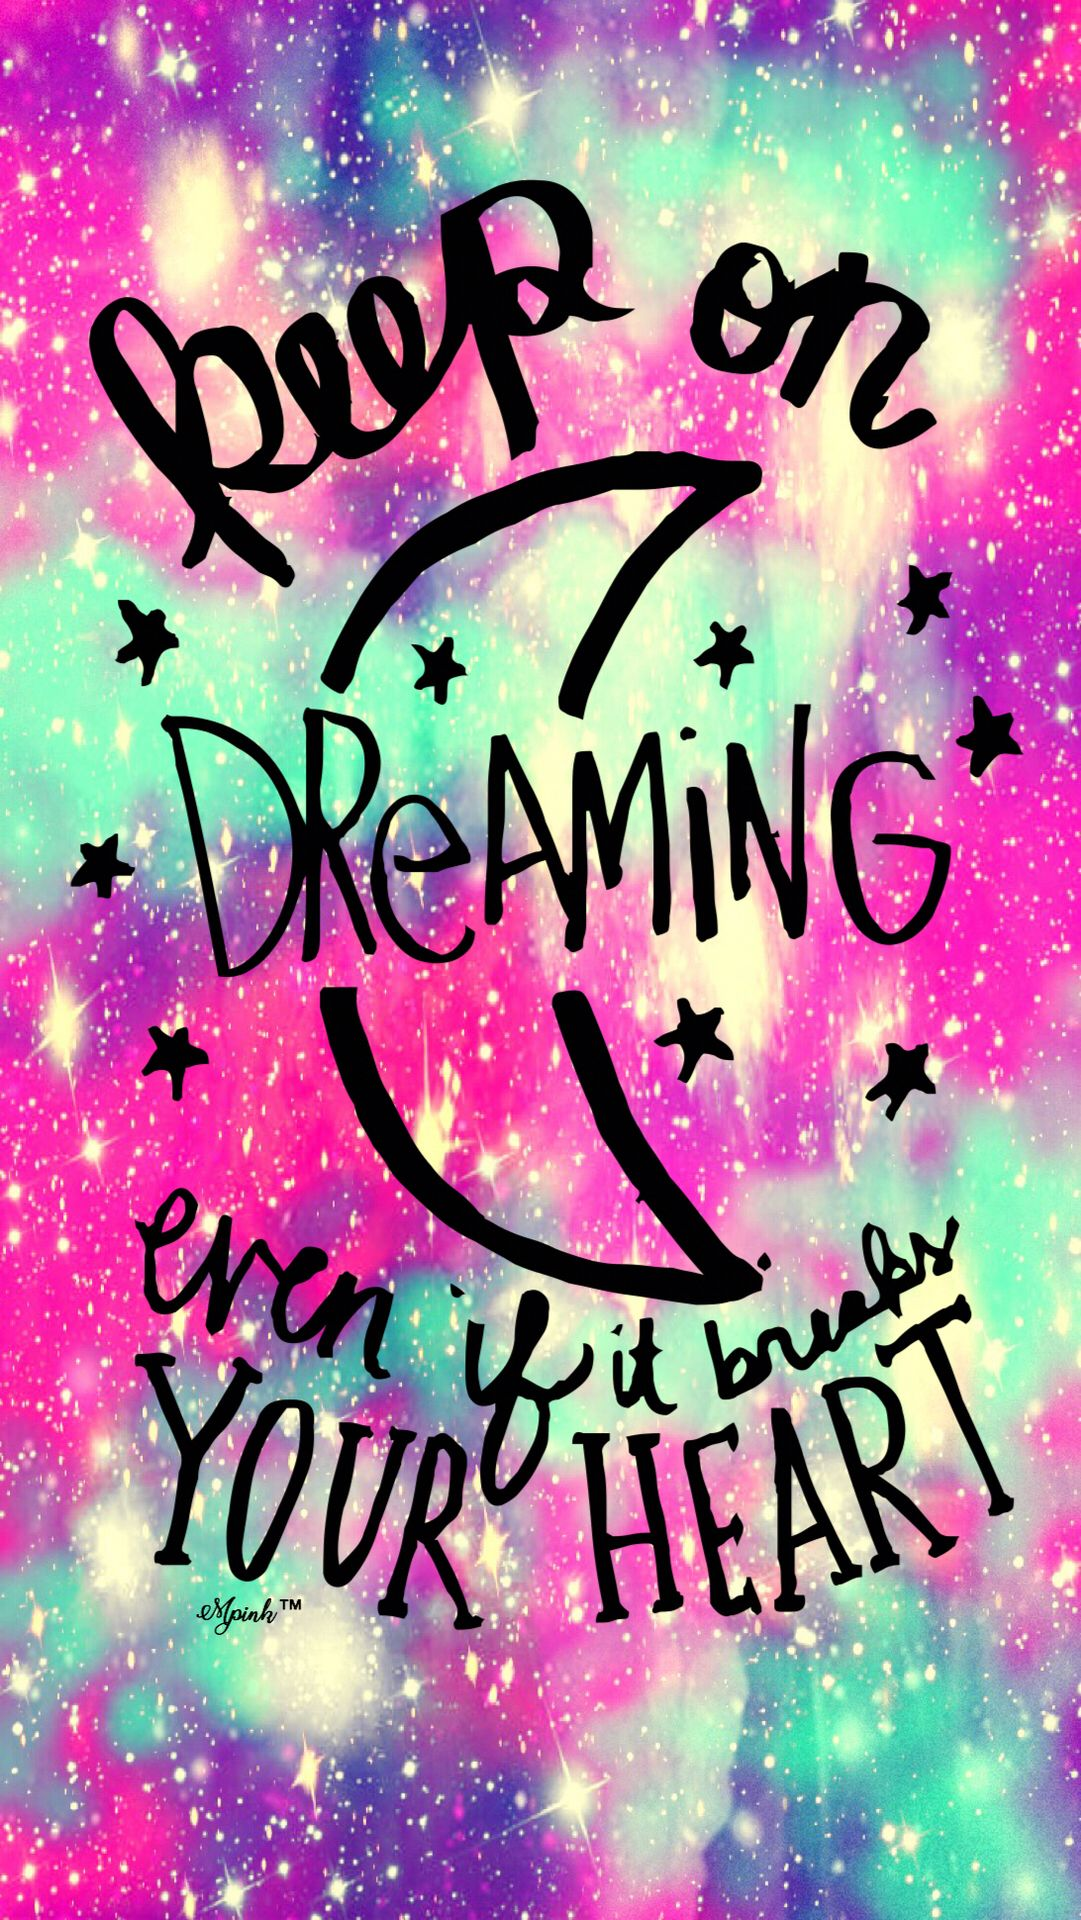 Keep On Dreaming Quote Galaxy iPhone/Android Wallpaper I